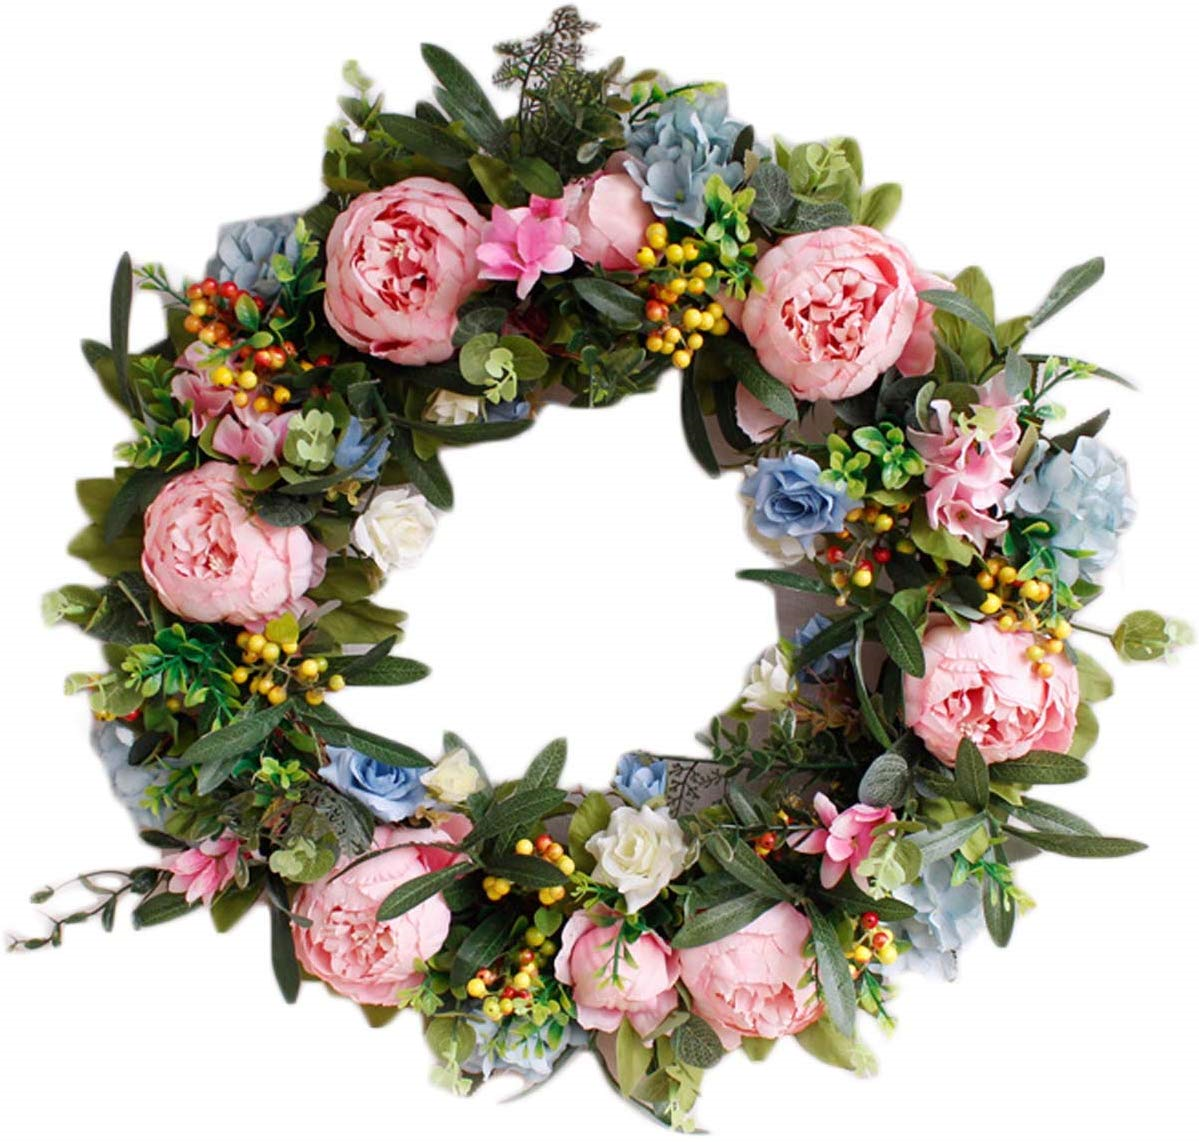 Large Home Floral Wreath Door Decor Fall Autumn Thanksgiving Grapevine Flower For Sale Online Ebay